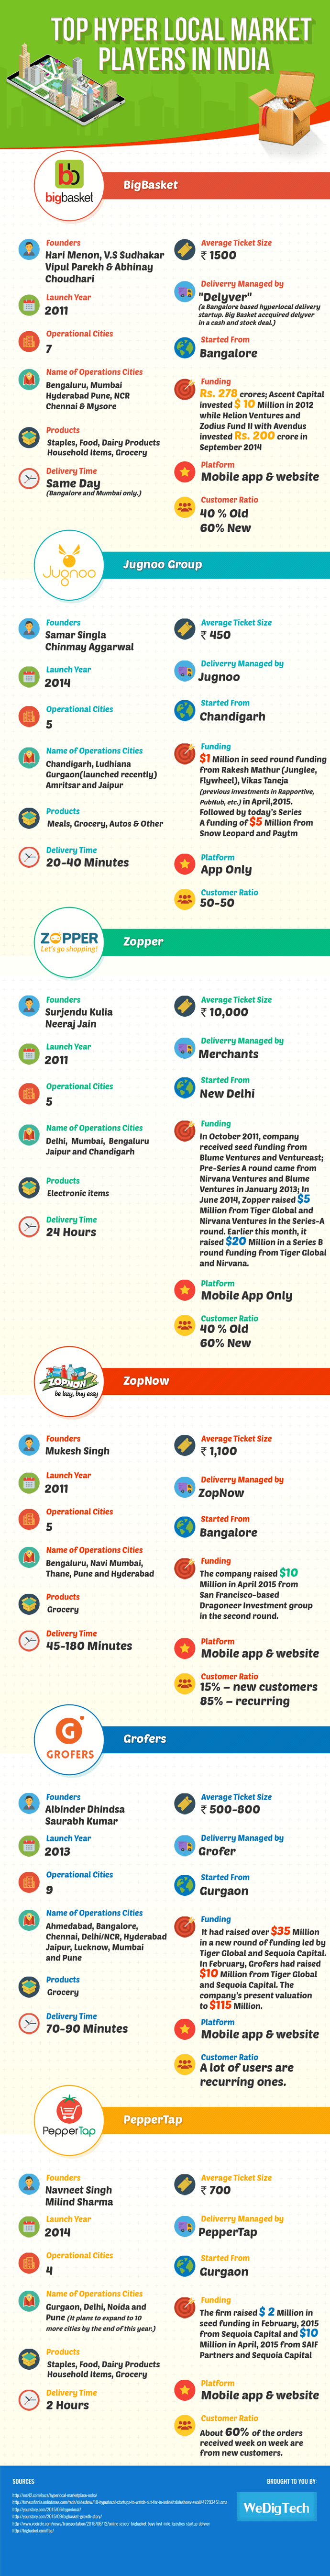 Infographic_Hyper-Local-Market-Players-min